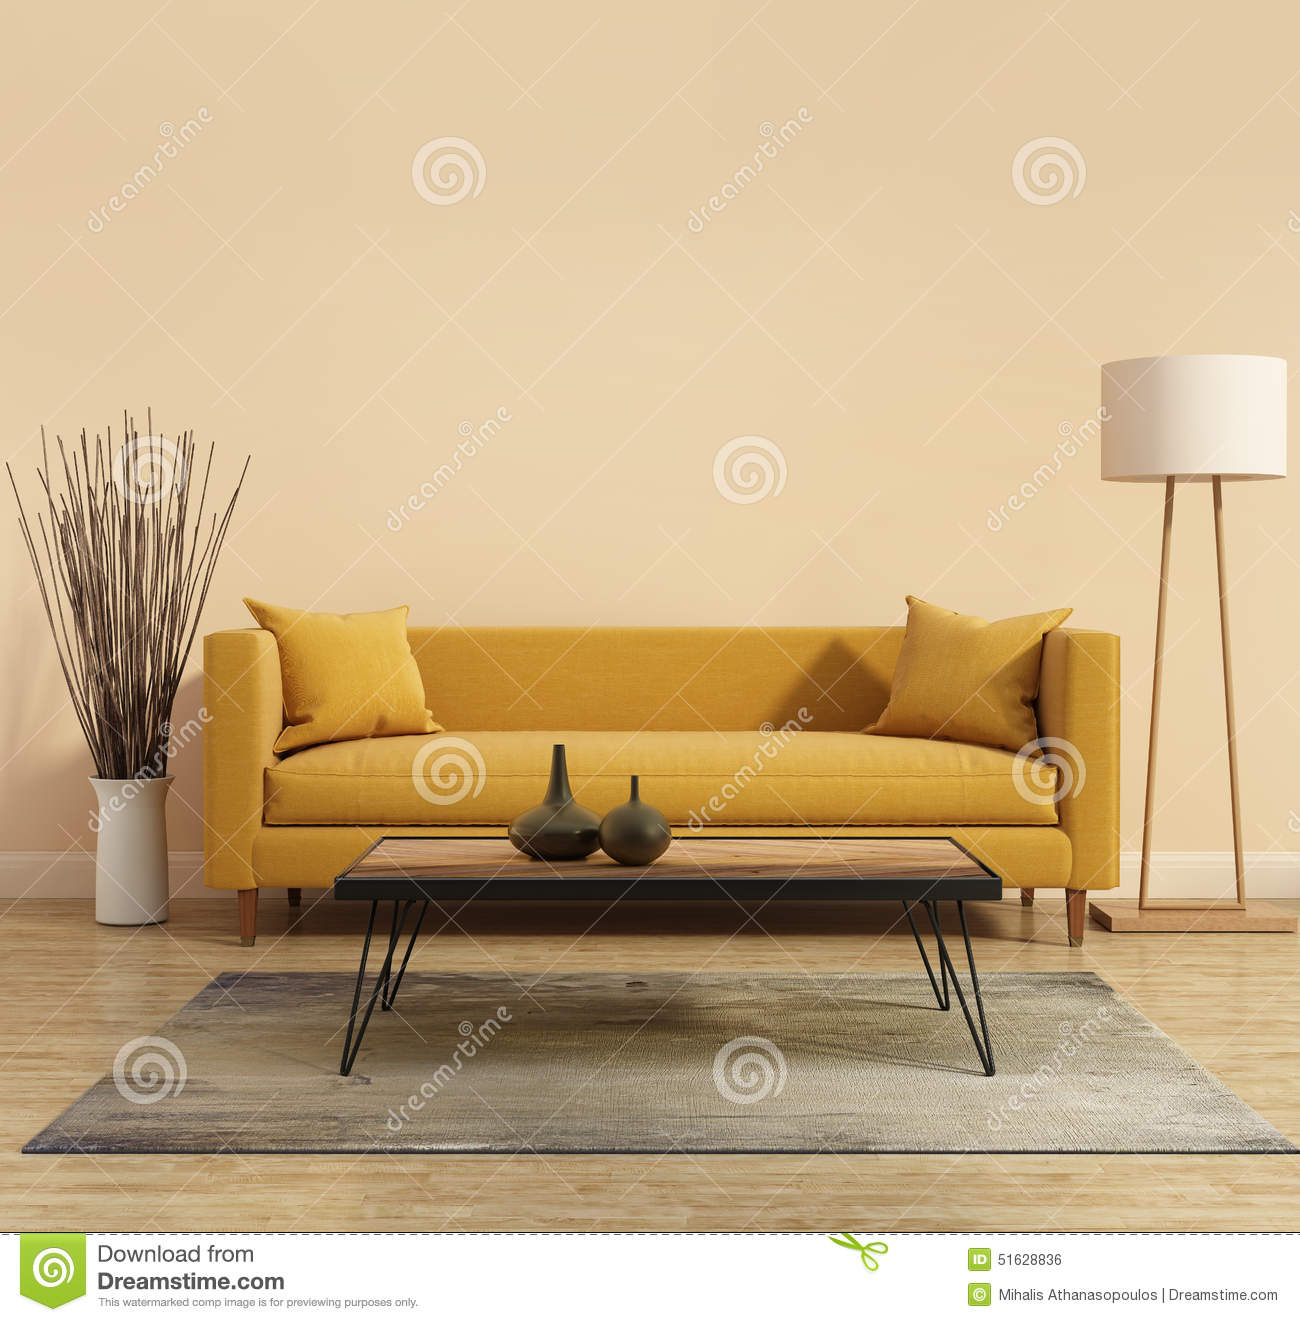 Modern modern interior with a yellow sofa in the living for Interior design ideas yellow living room